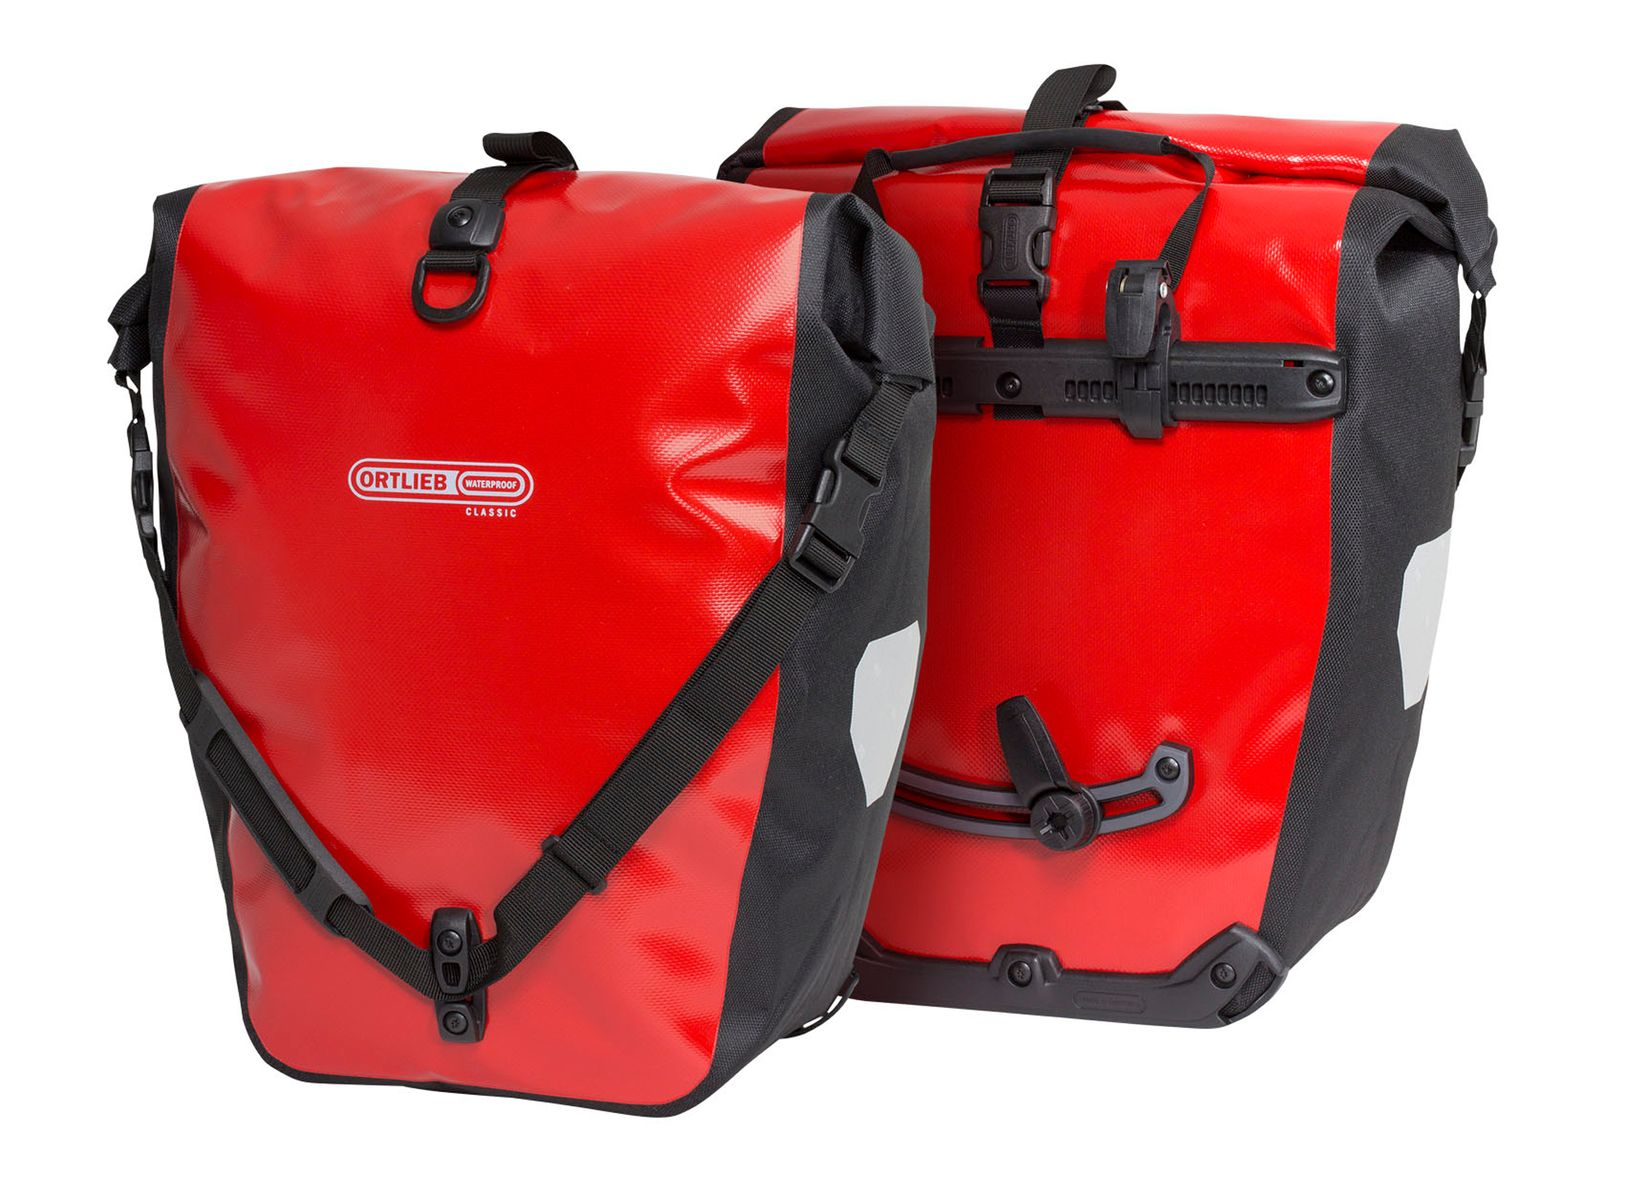 Back Roller Classic set of two pannier bags